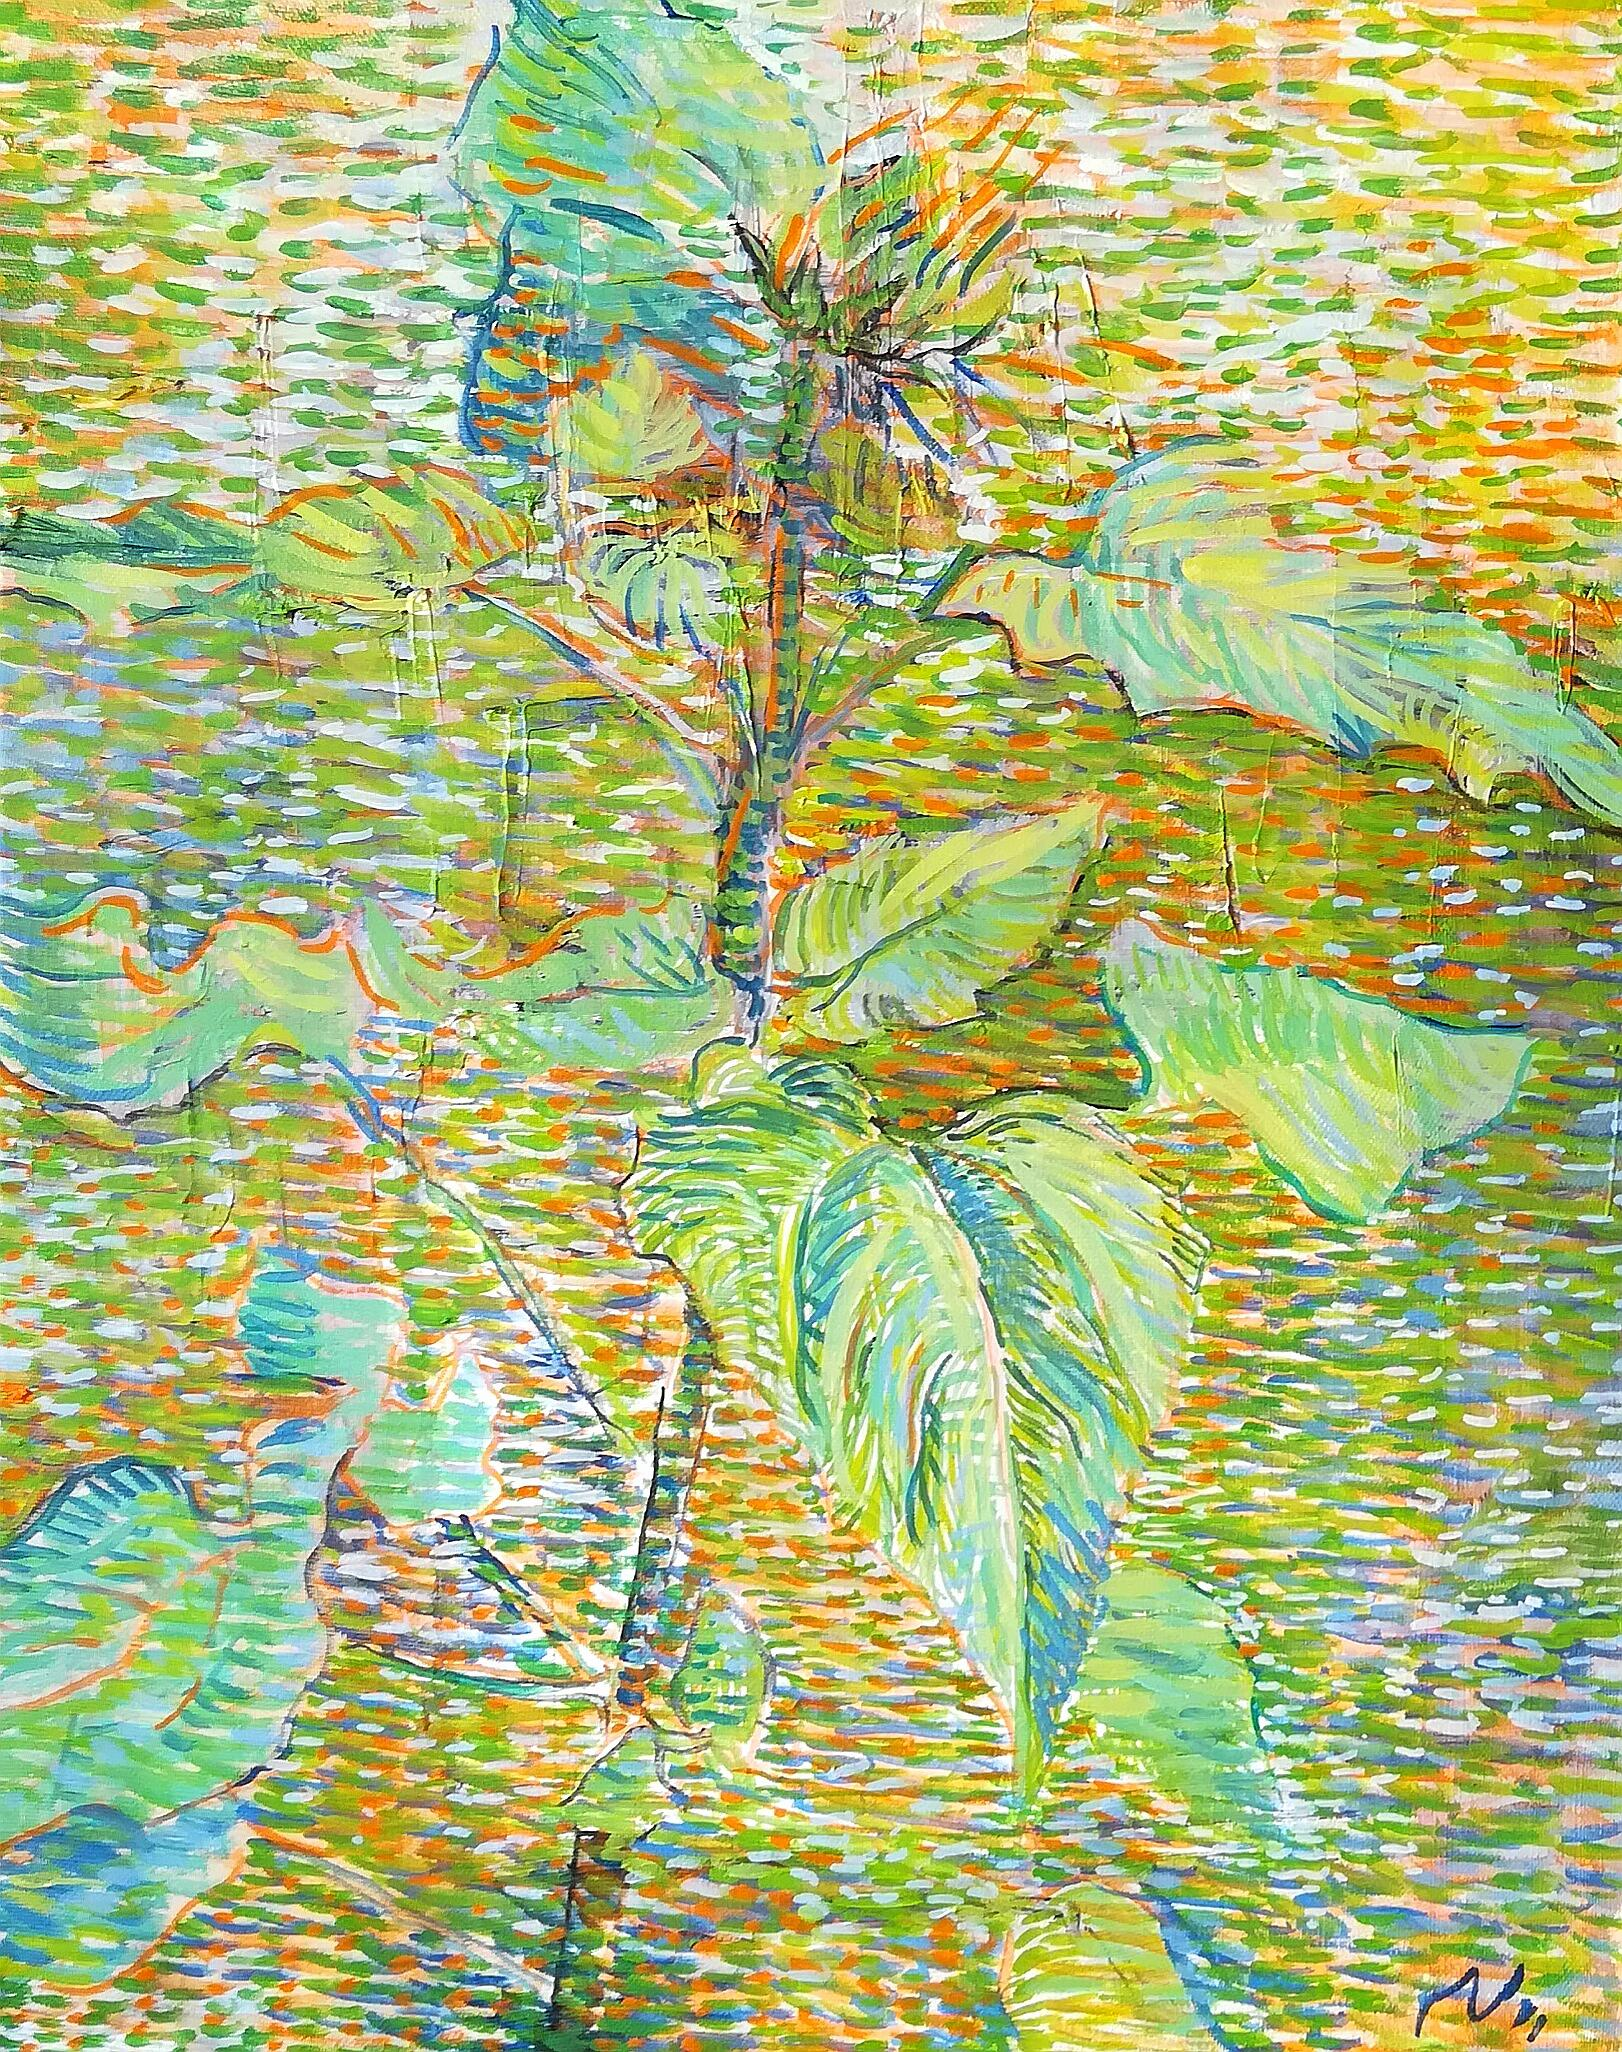 A Young Sunflower - 21st Century Contemporary Impressionism Oil Painting